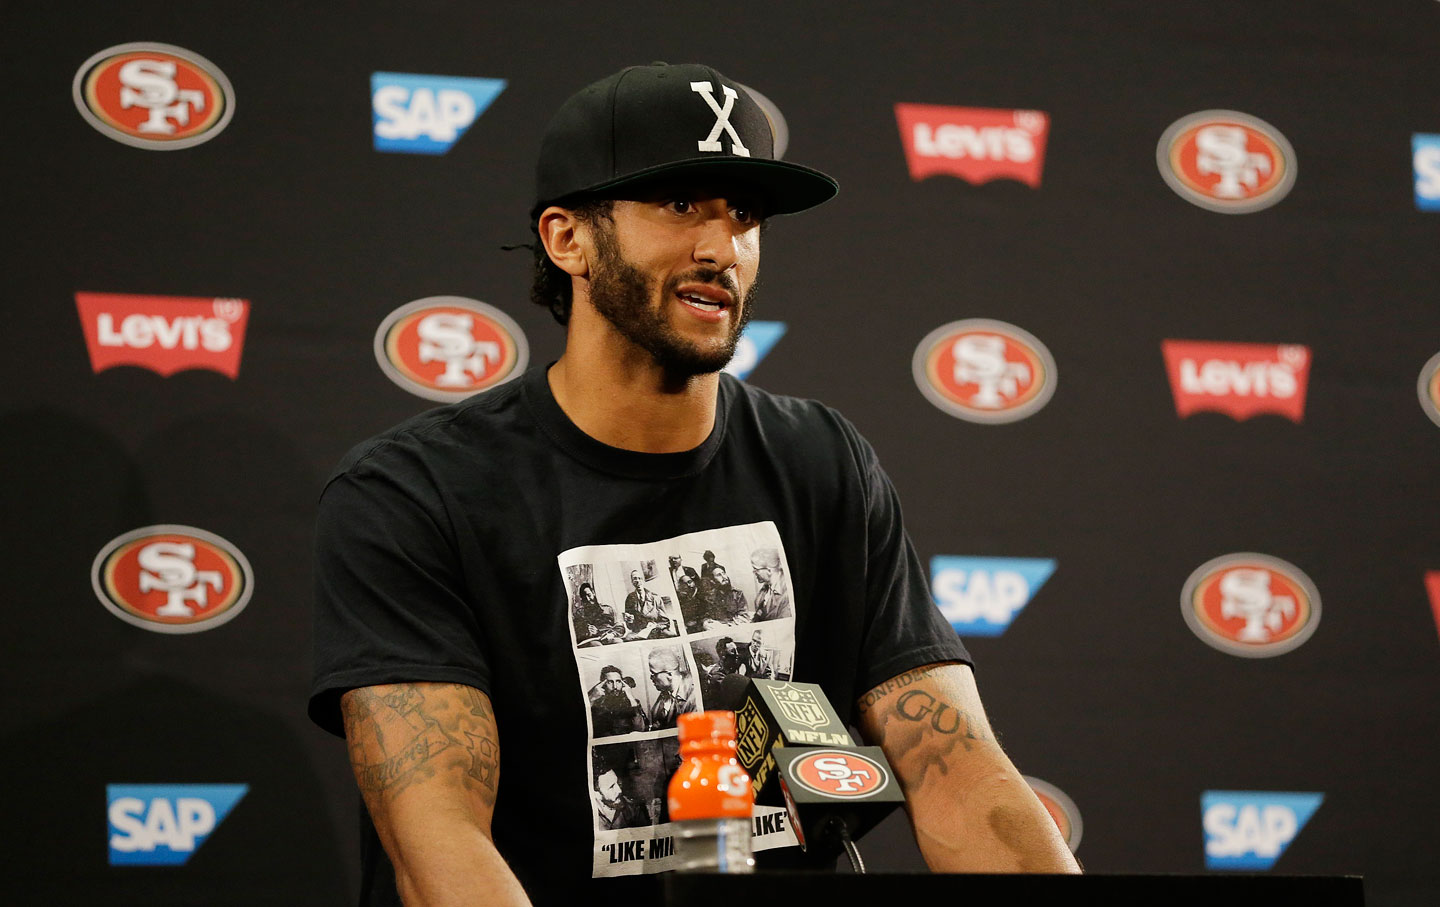 Colin Kaepernick answers questions at a news conference on August 26, 2016.